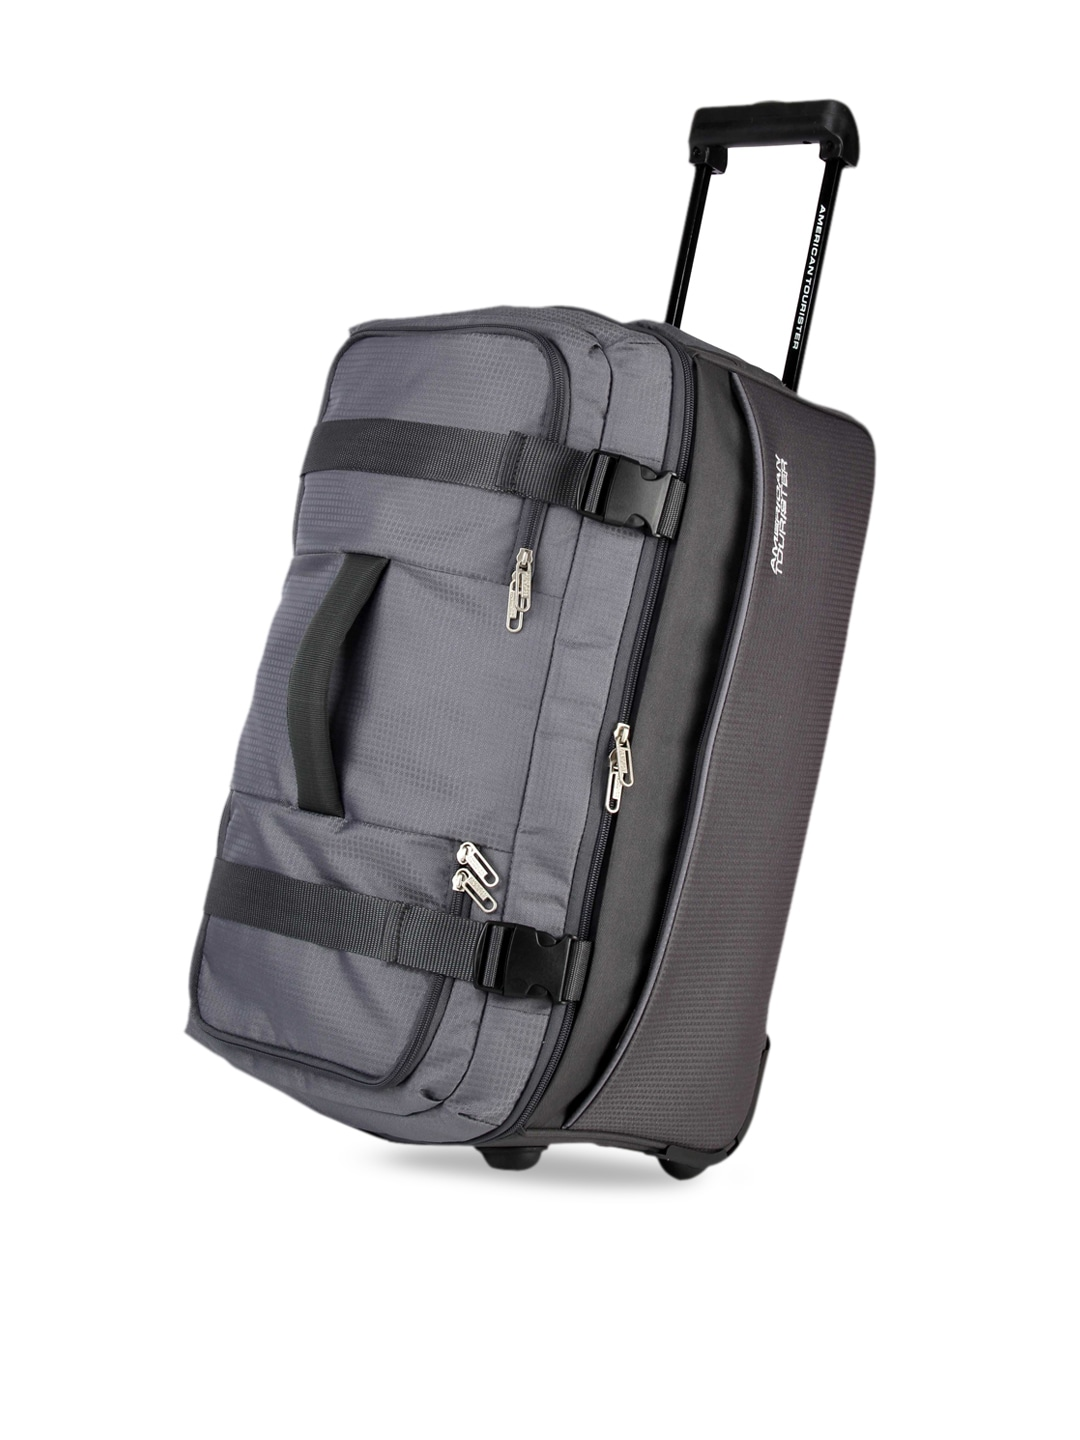 fec2f57143a0 American Tourister - Buy American Tourister Products Online